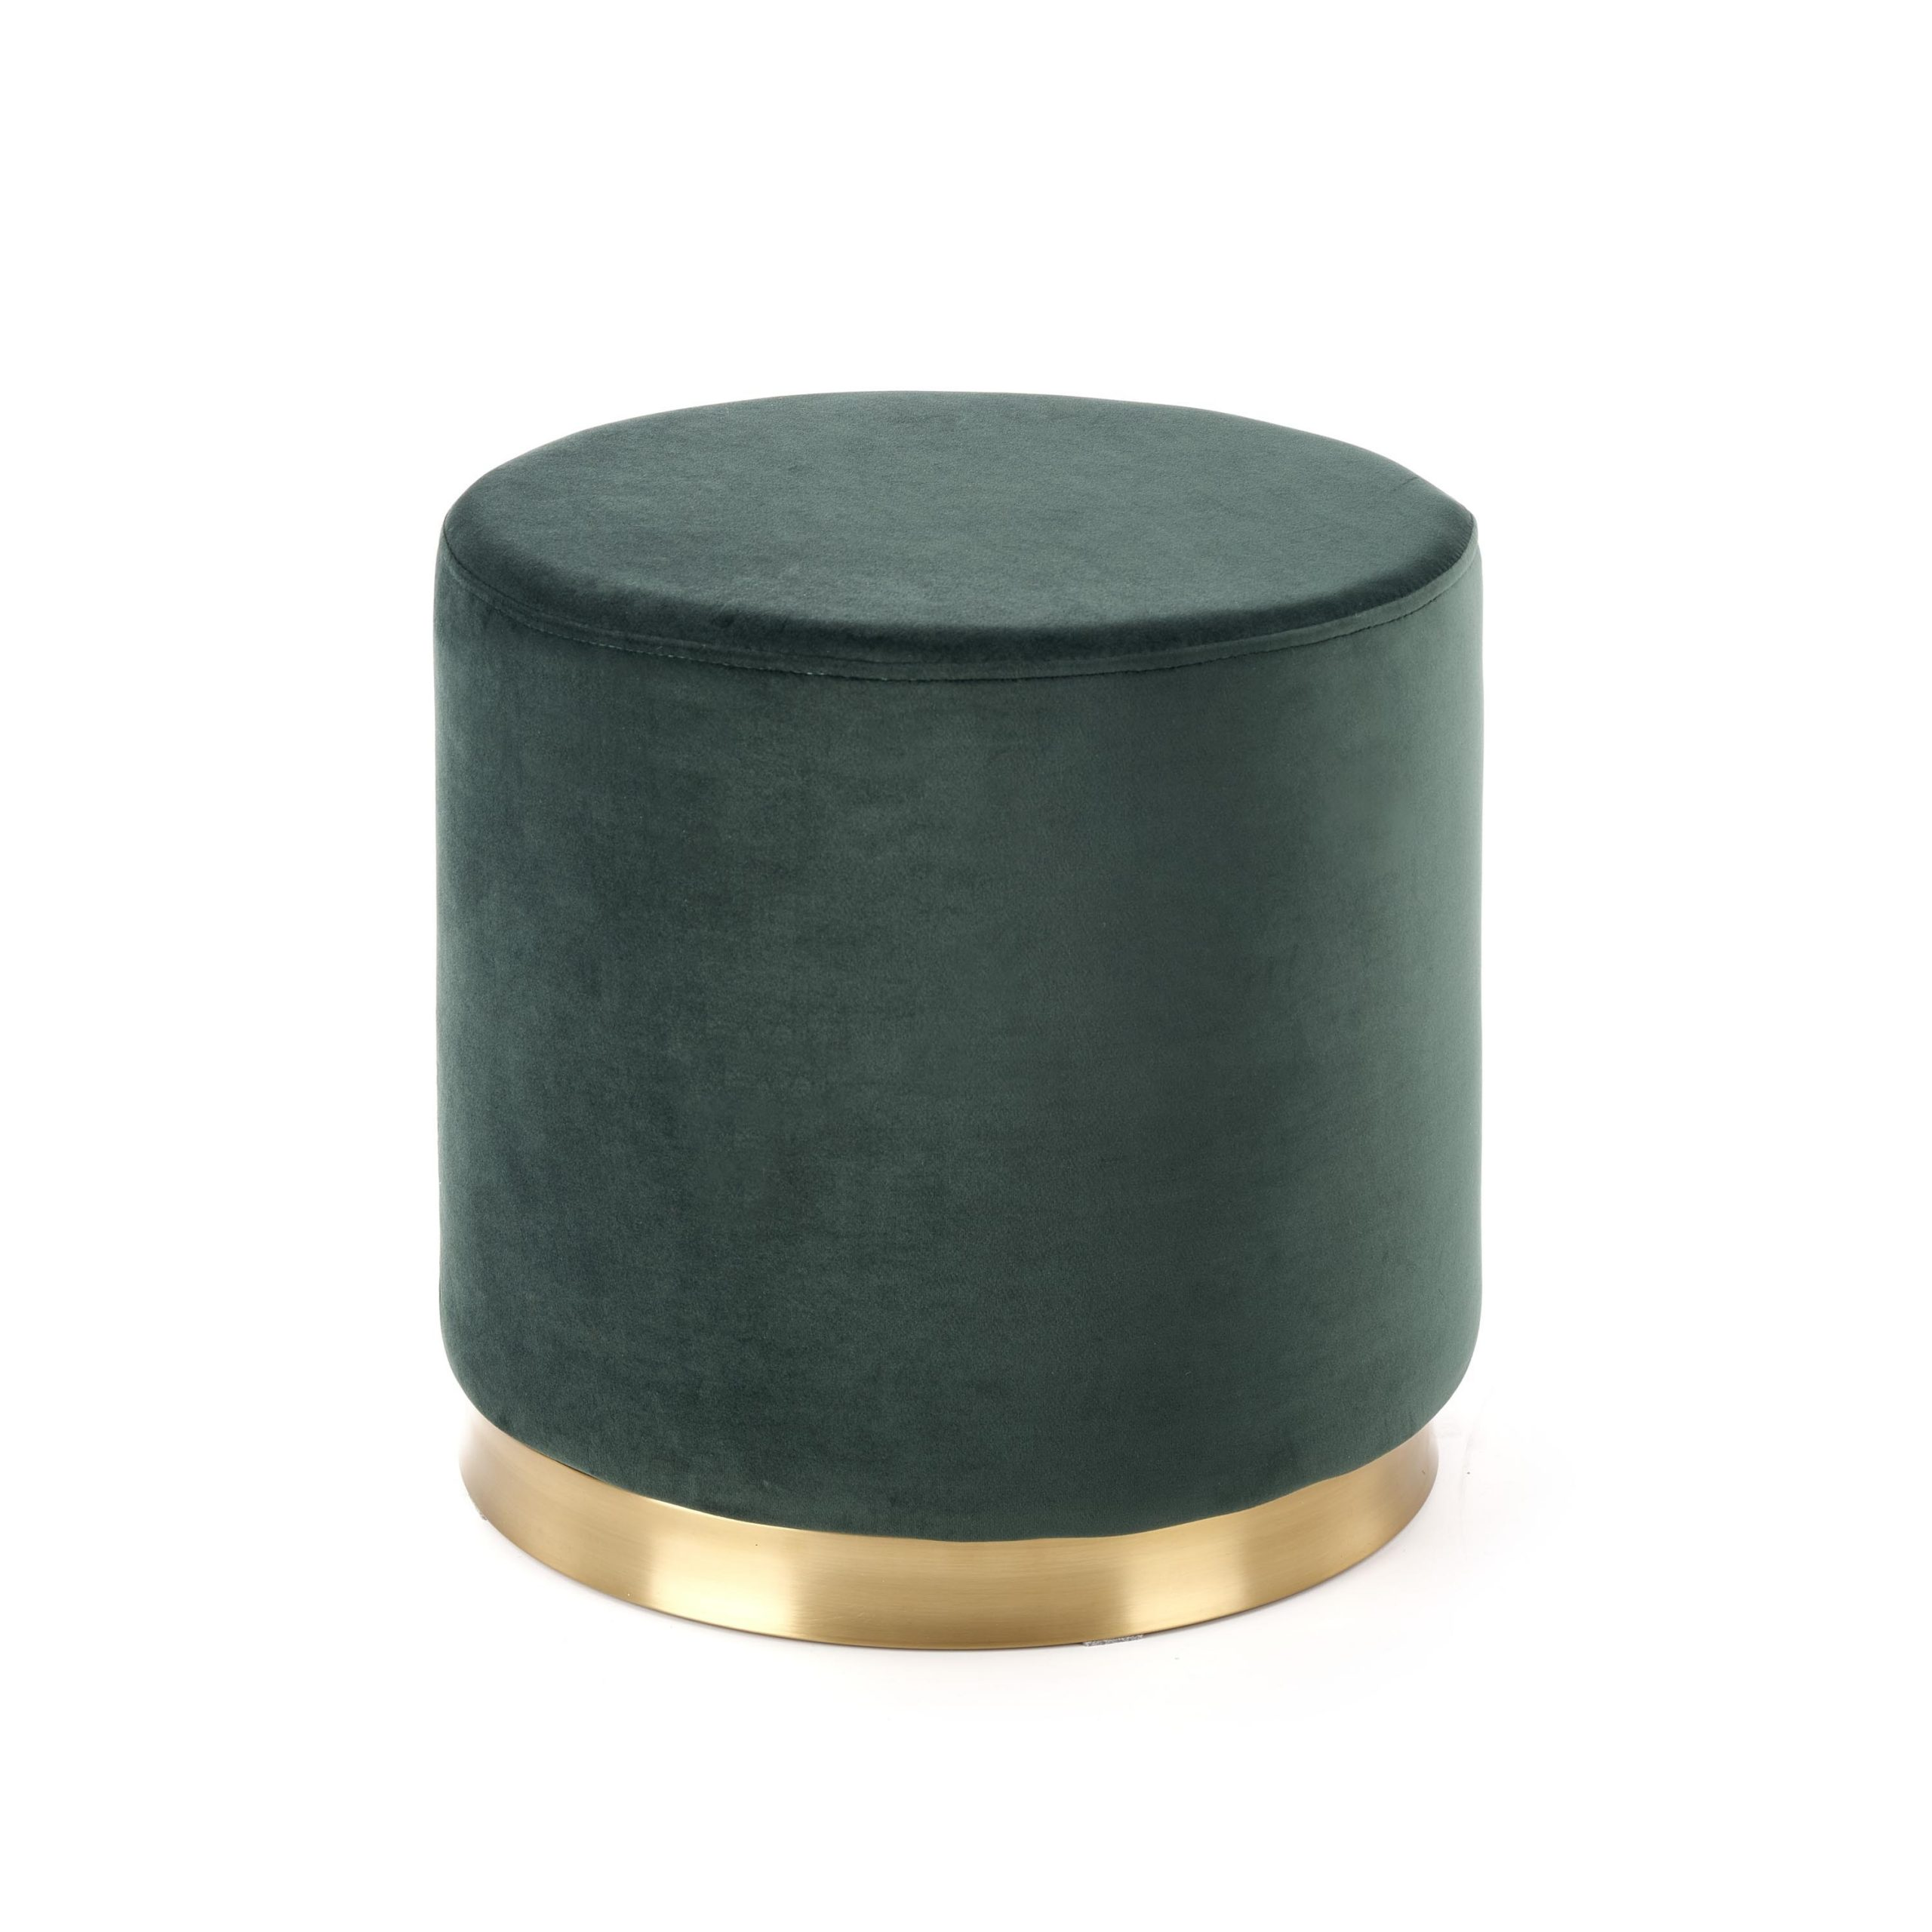 Taburet tapitat cu stofa Covet Dark Green / Gold